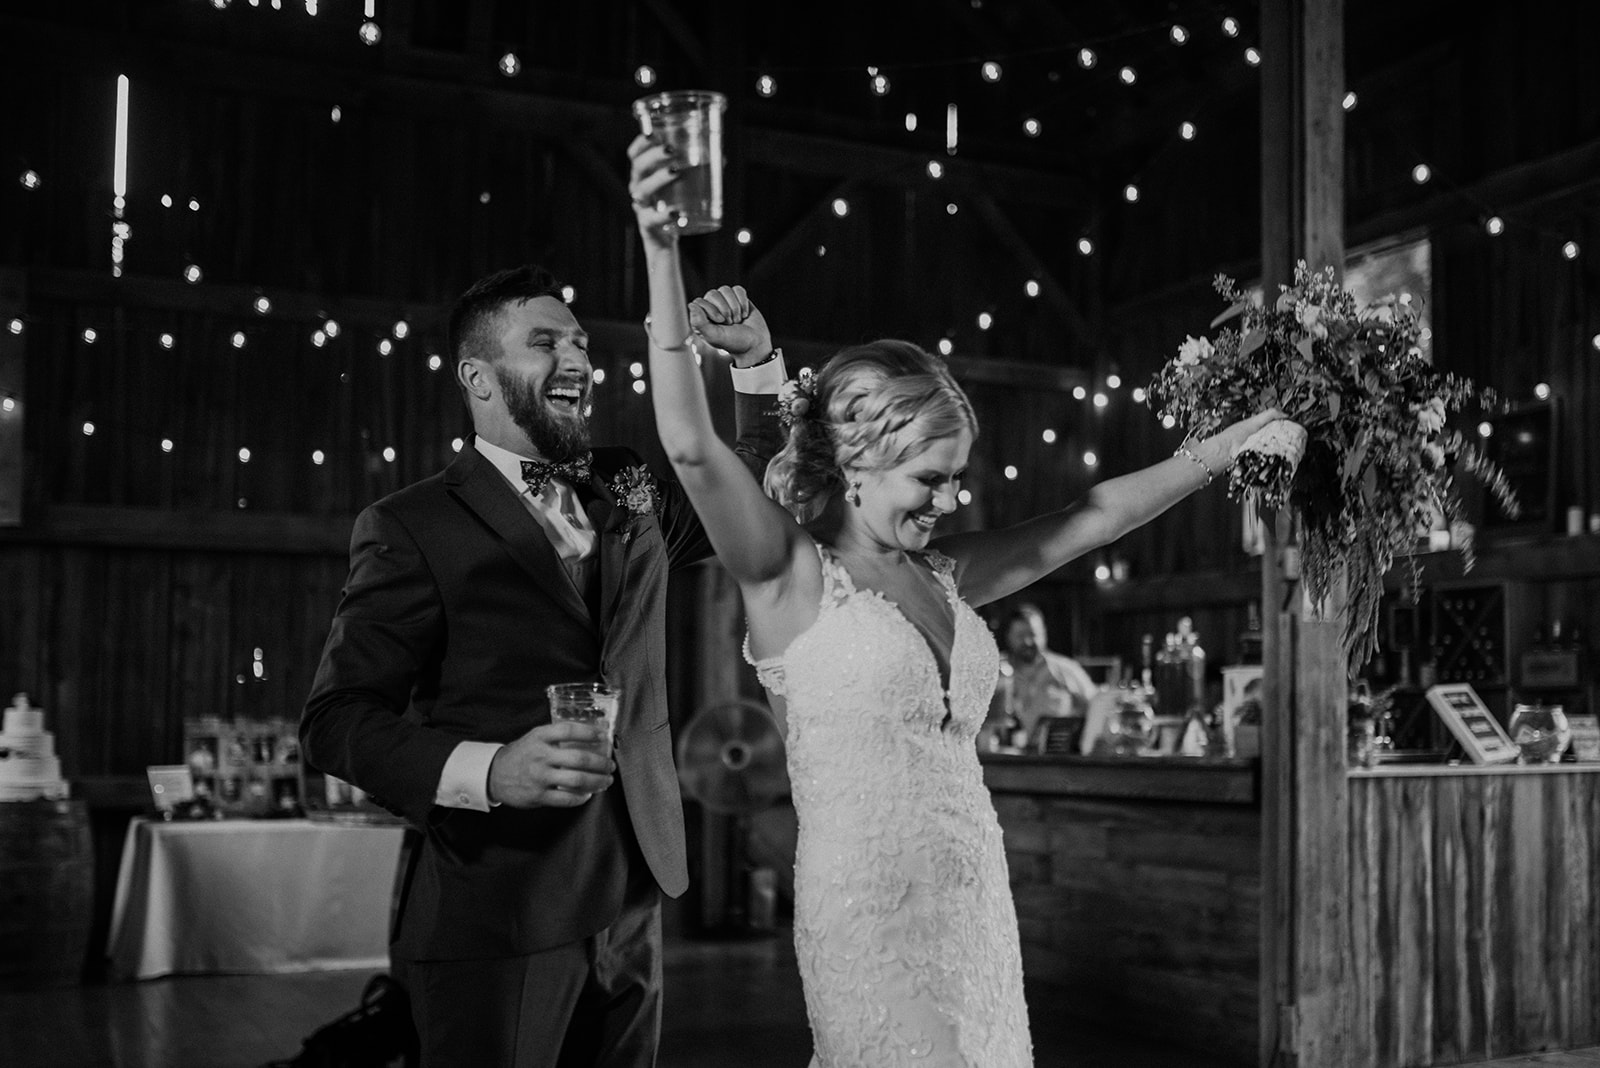 overthevineswisconsinwedding_1164.jpg